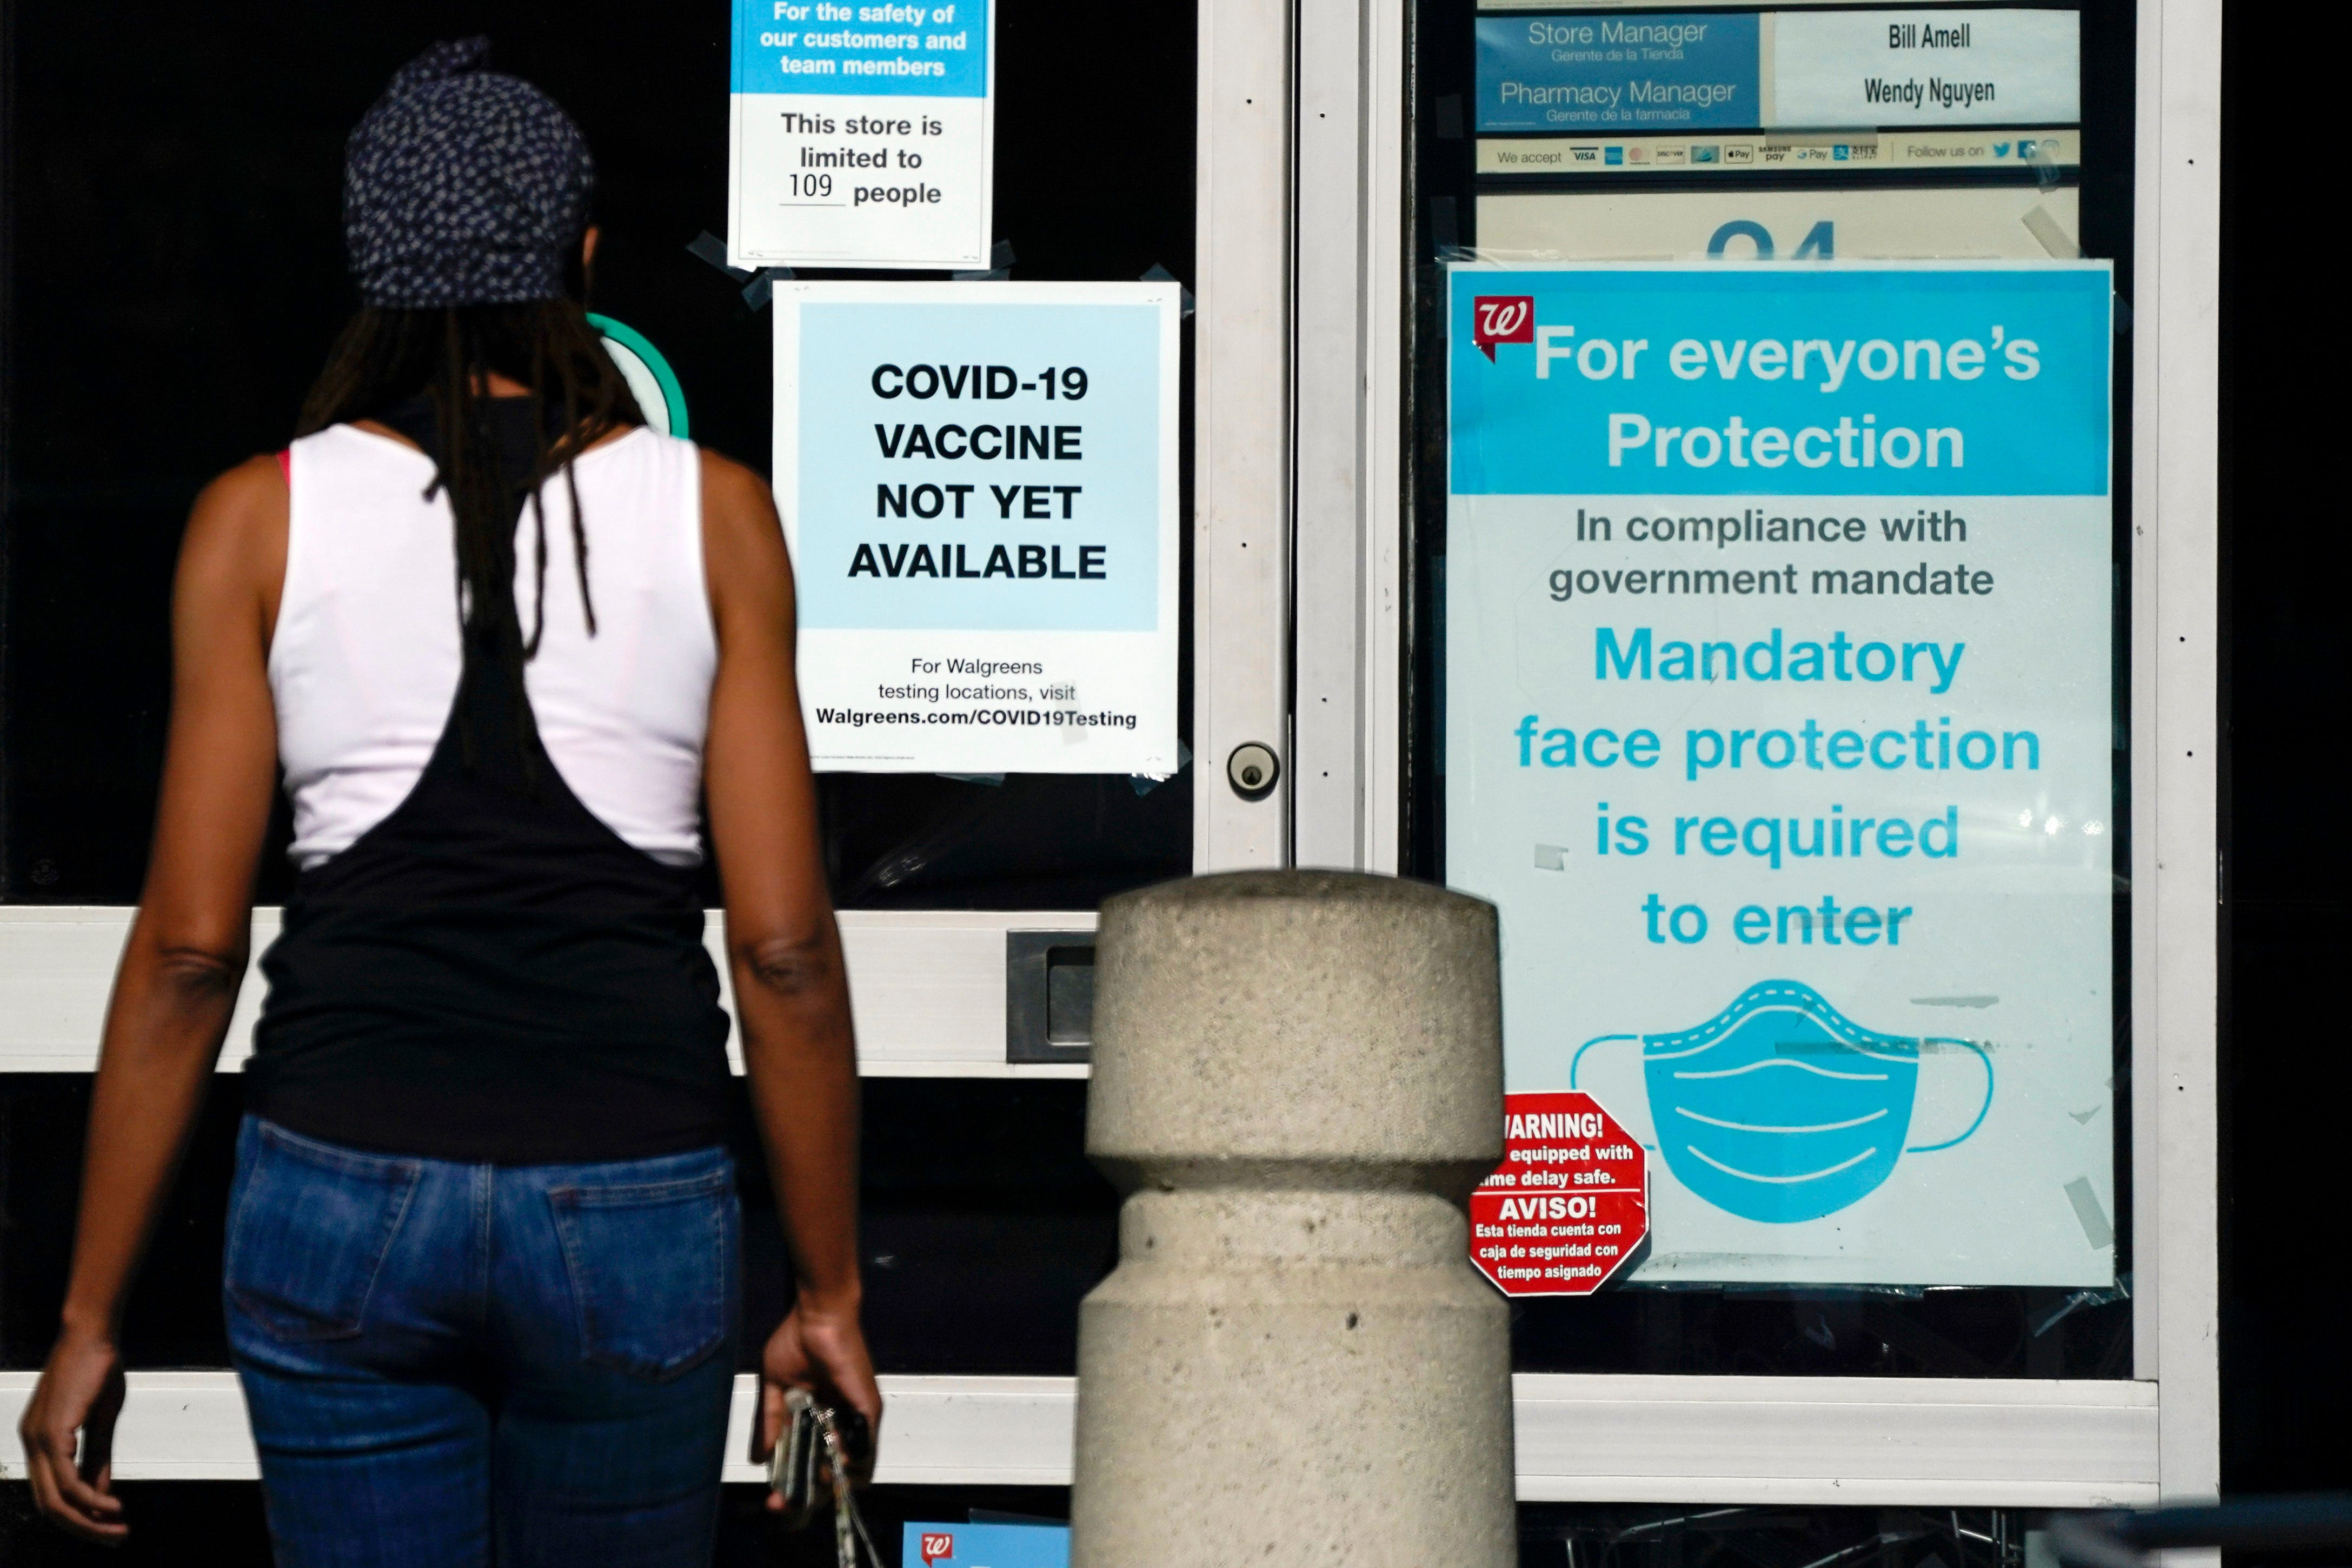 A customer walks past a sign on Dec. 2 indicating a COVID-19 vaccine is not yet available at a Walgreens in Long Beach, California. States faced a deadline of Dec. 4 to place orders for the coronavirus vaccine as many reported record infections, hospitalizations and deaths, while hospitals were pushed to the breaking point with the worst feared yet to come.